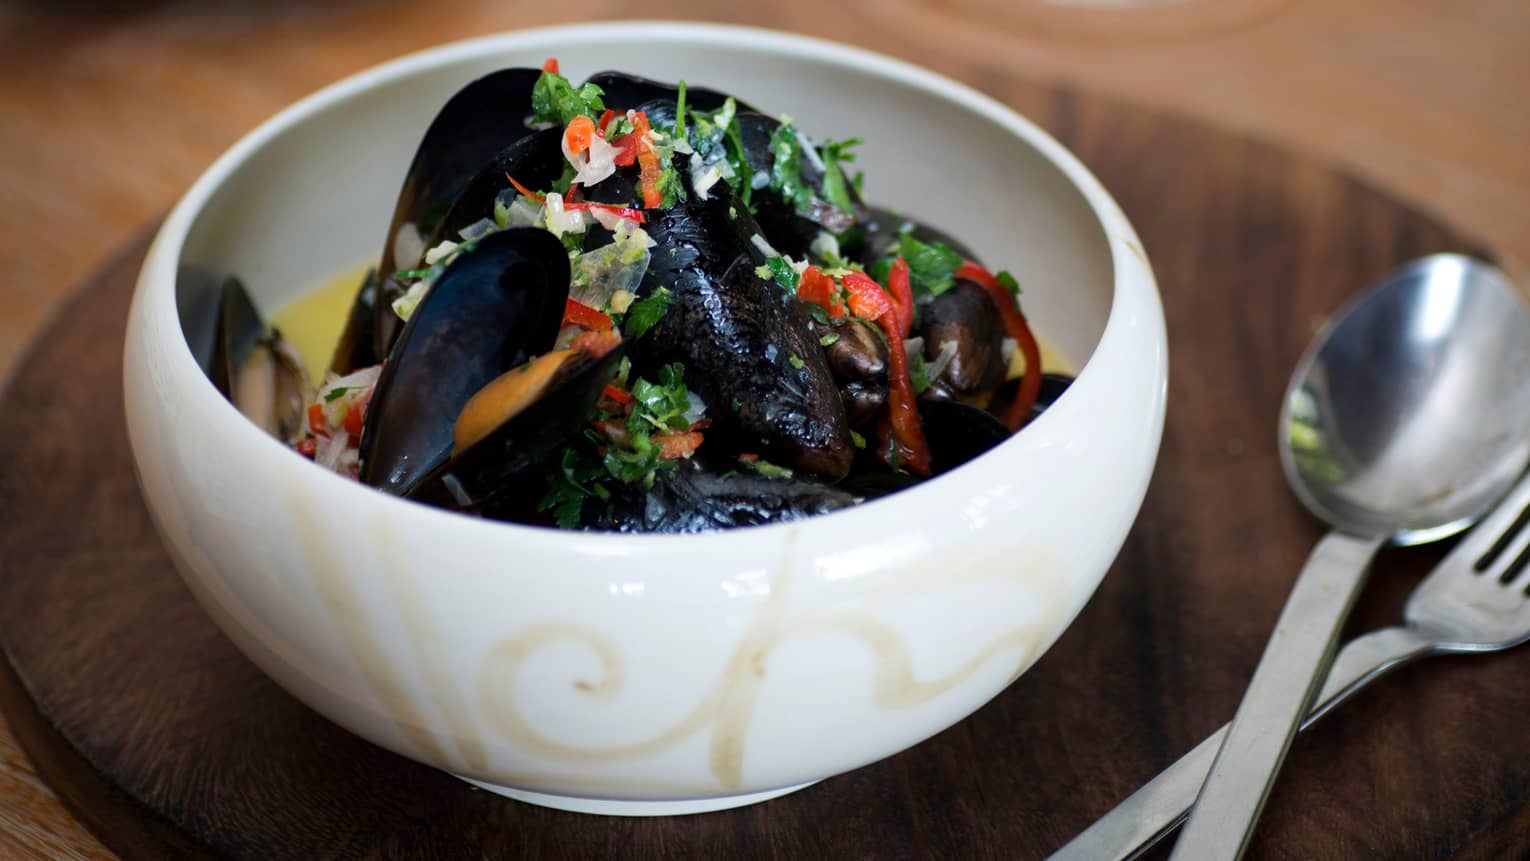 White bowl with Pot Steamed Black Mussels, garnished with chopped lemongrass, ginger, citrus